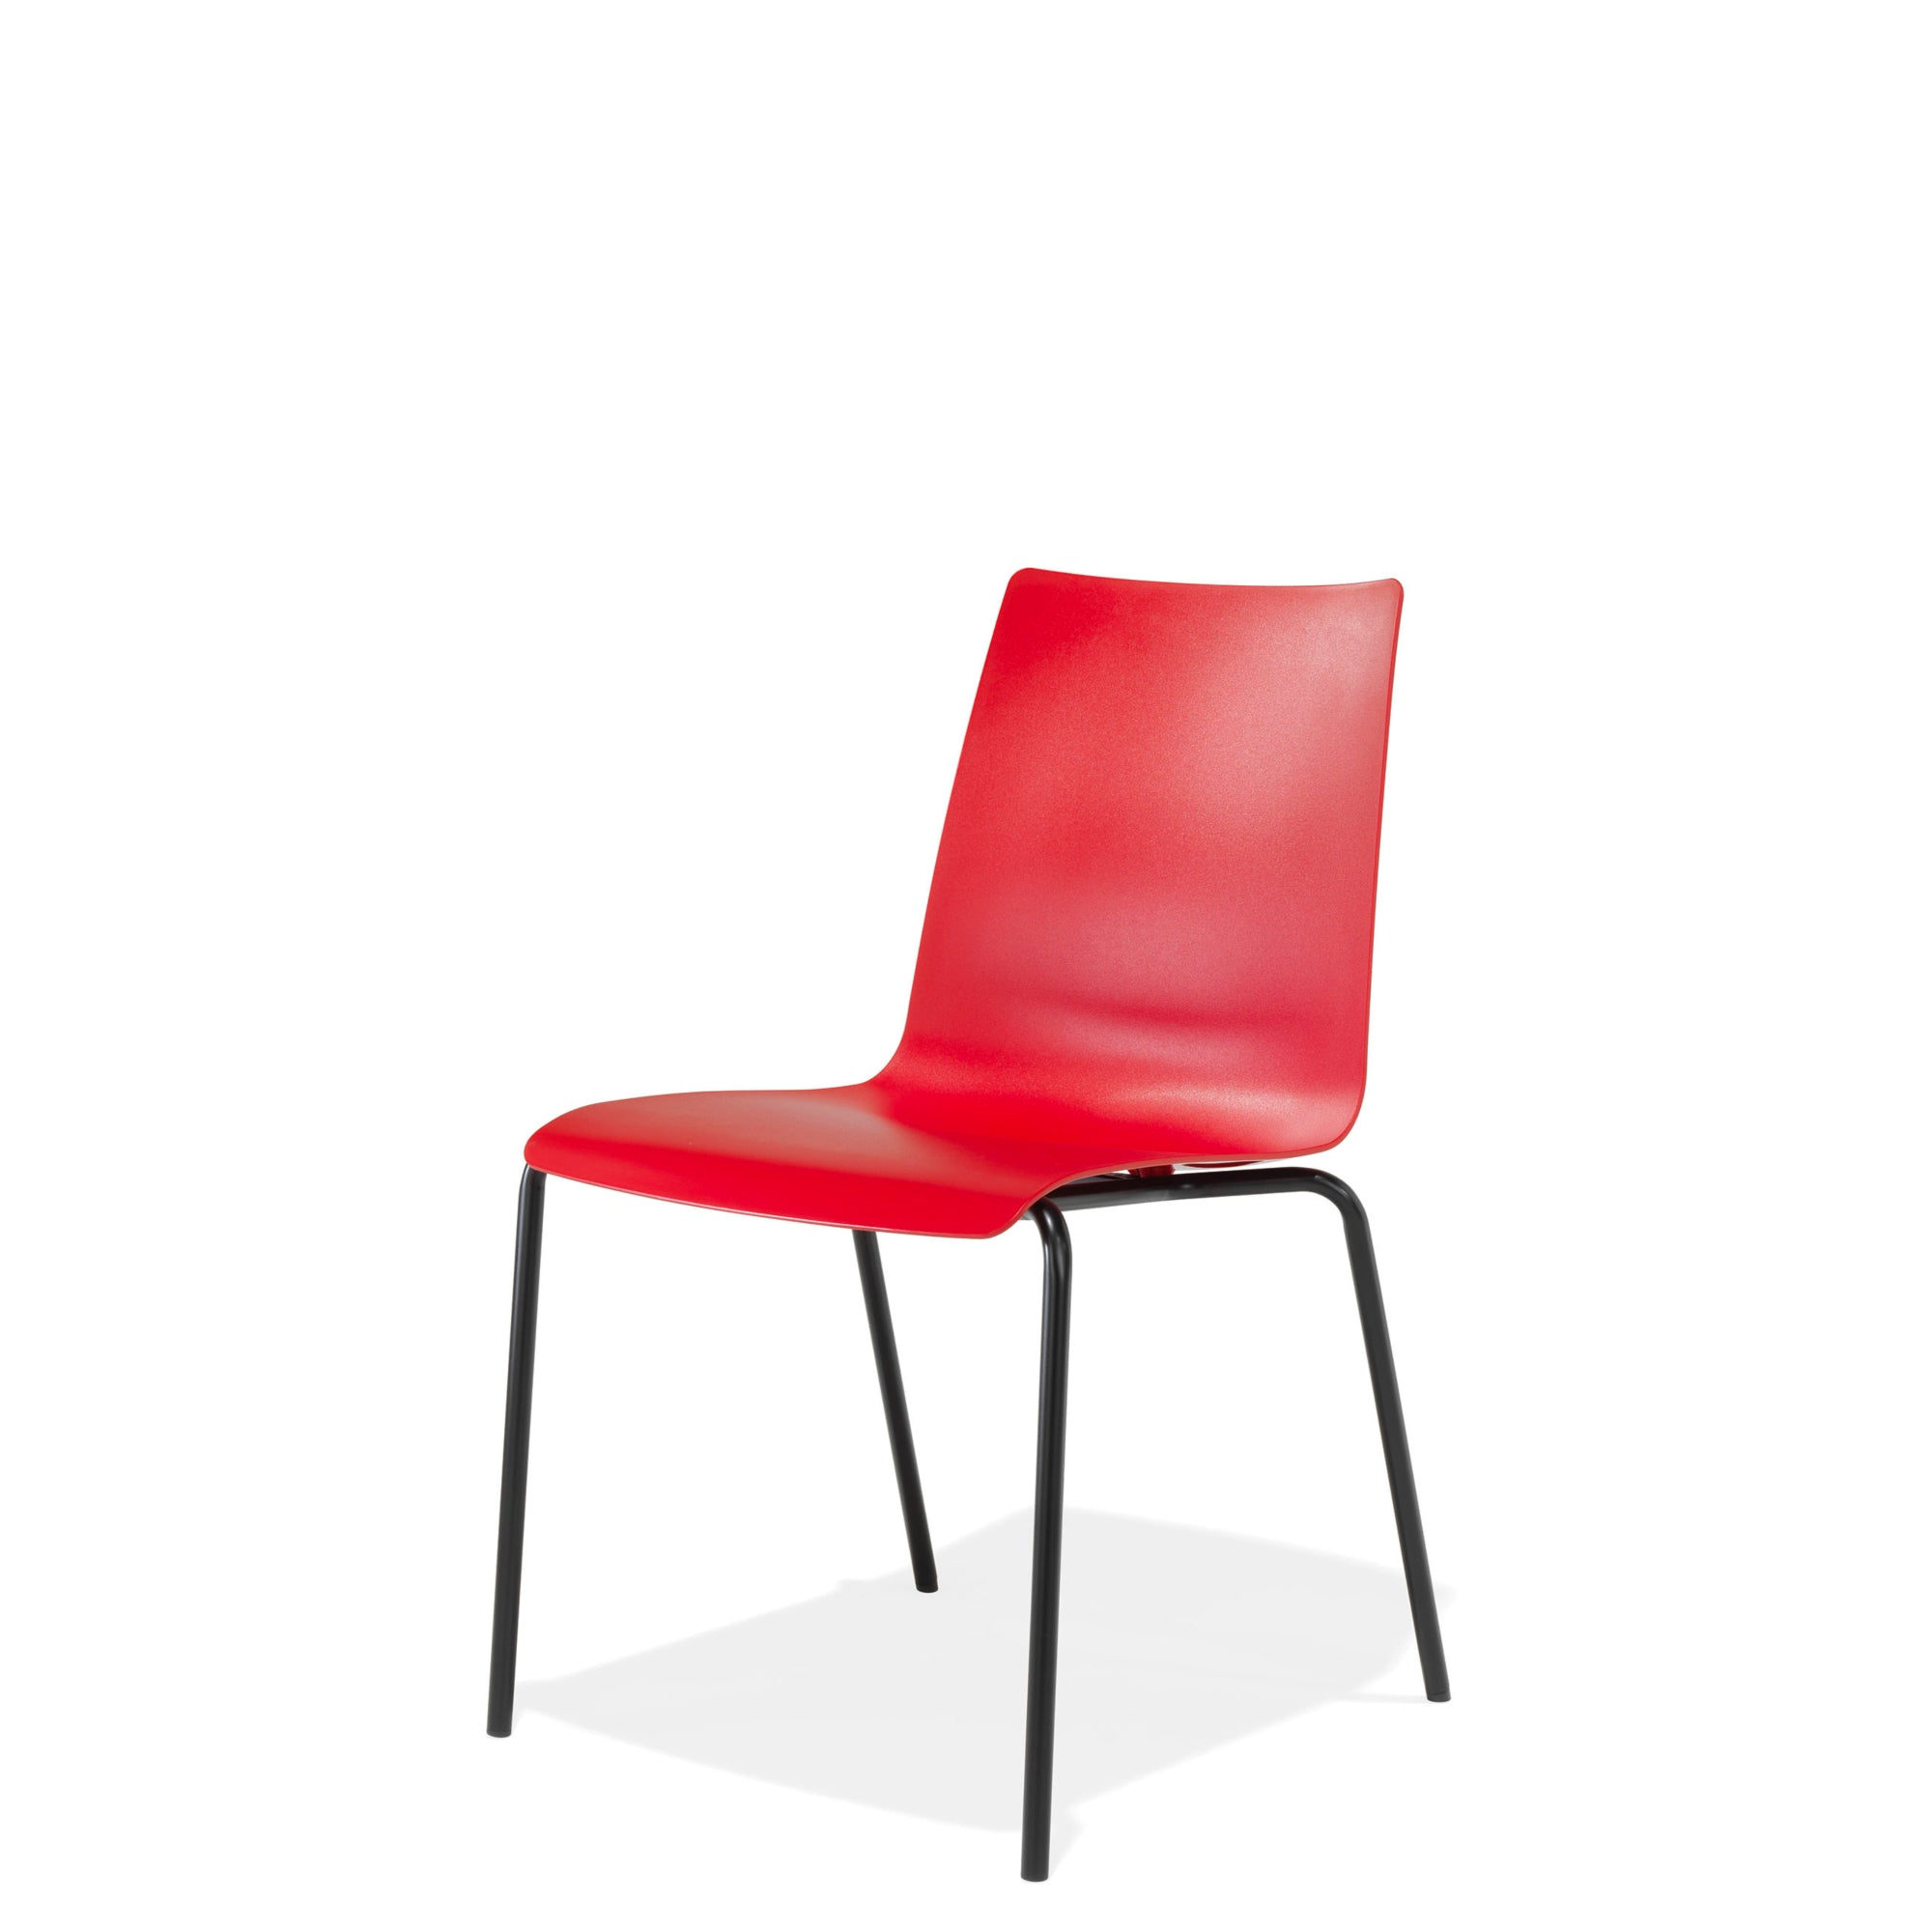 Kusch+Co Stackable Red Chair with Black Powder Coated Base